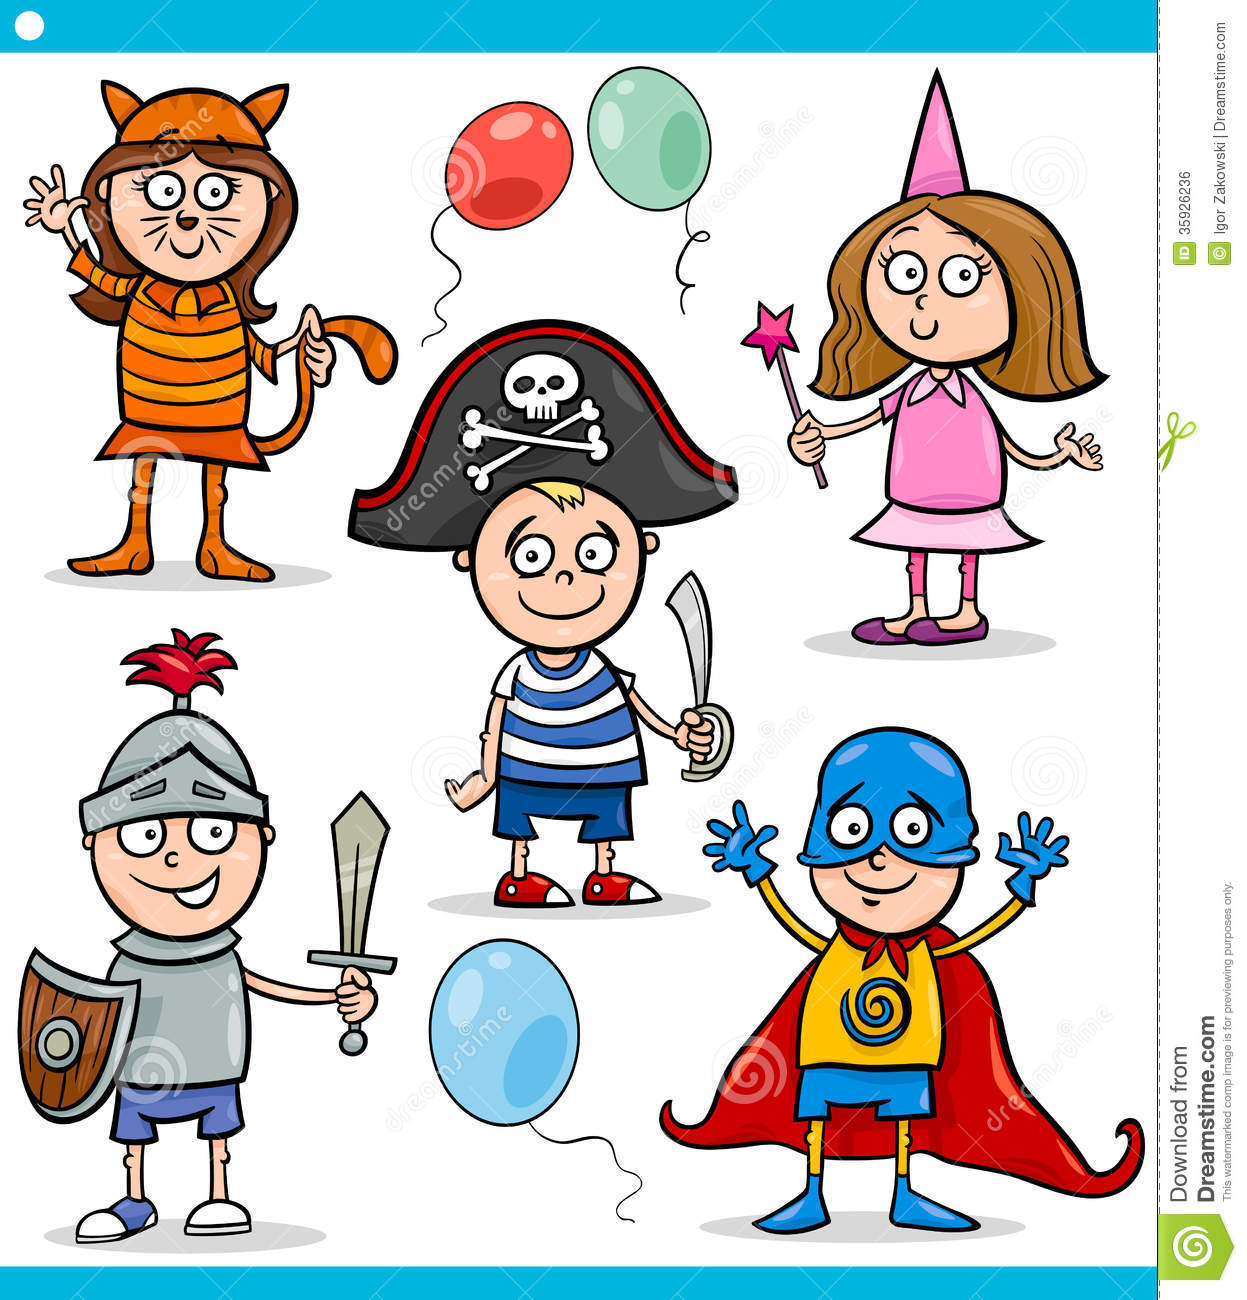 Kids character costumes clipart clip free library Children In Fancy Ball Costumes Set Royalty Free Stock Image ... clip free library